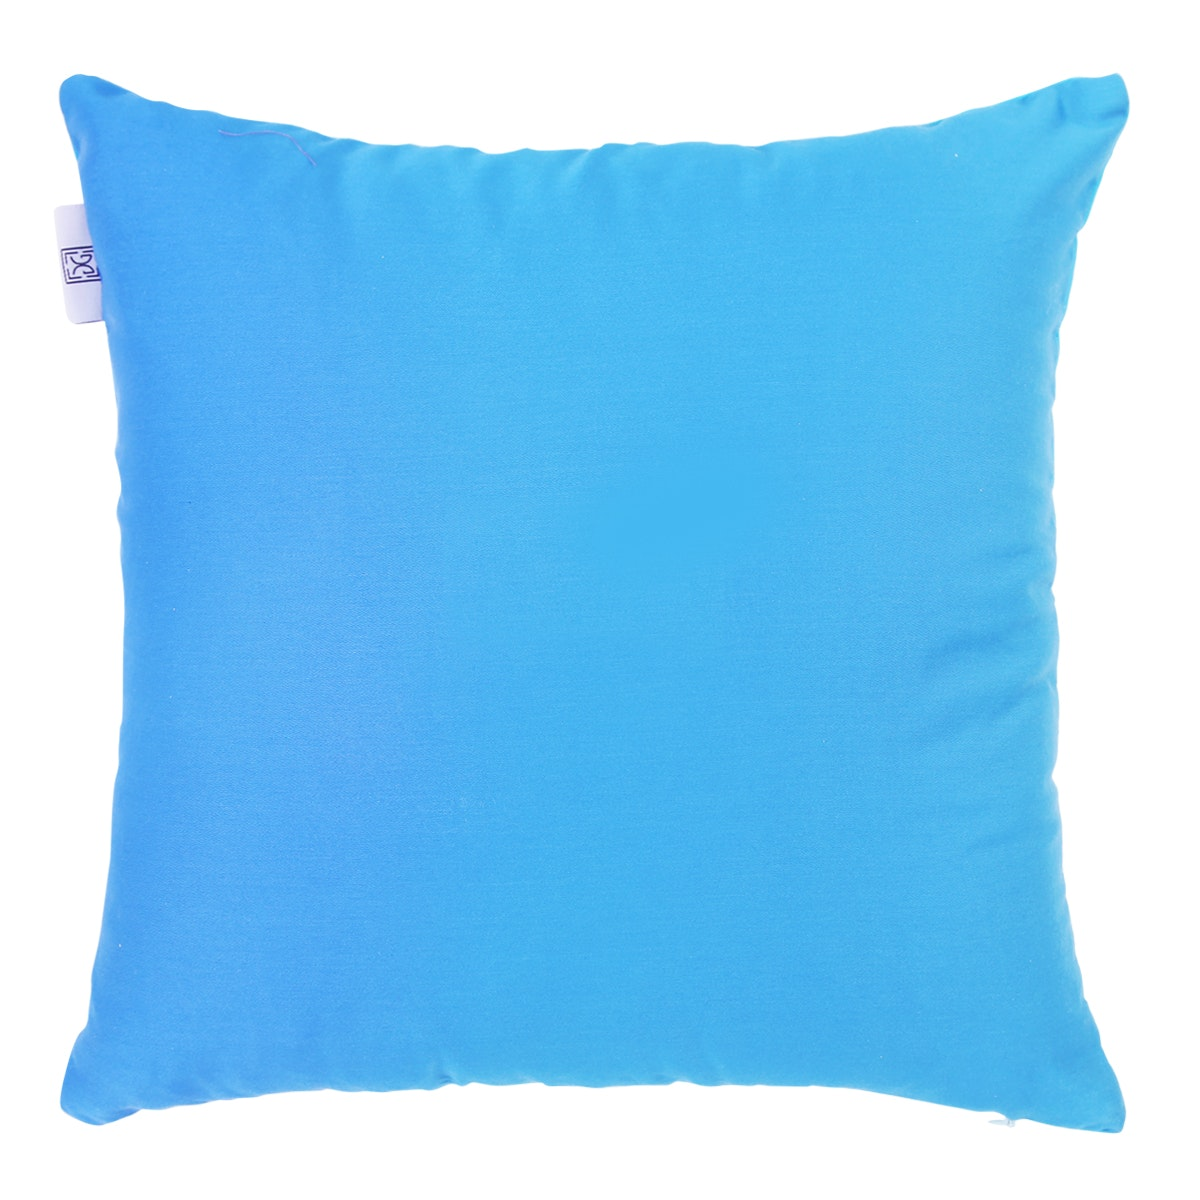 Glerry Home Decor Hello Blu Cushion 40x40cm